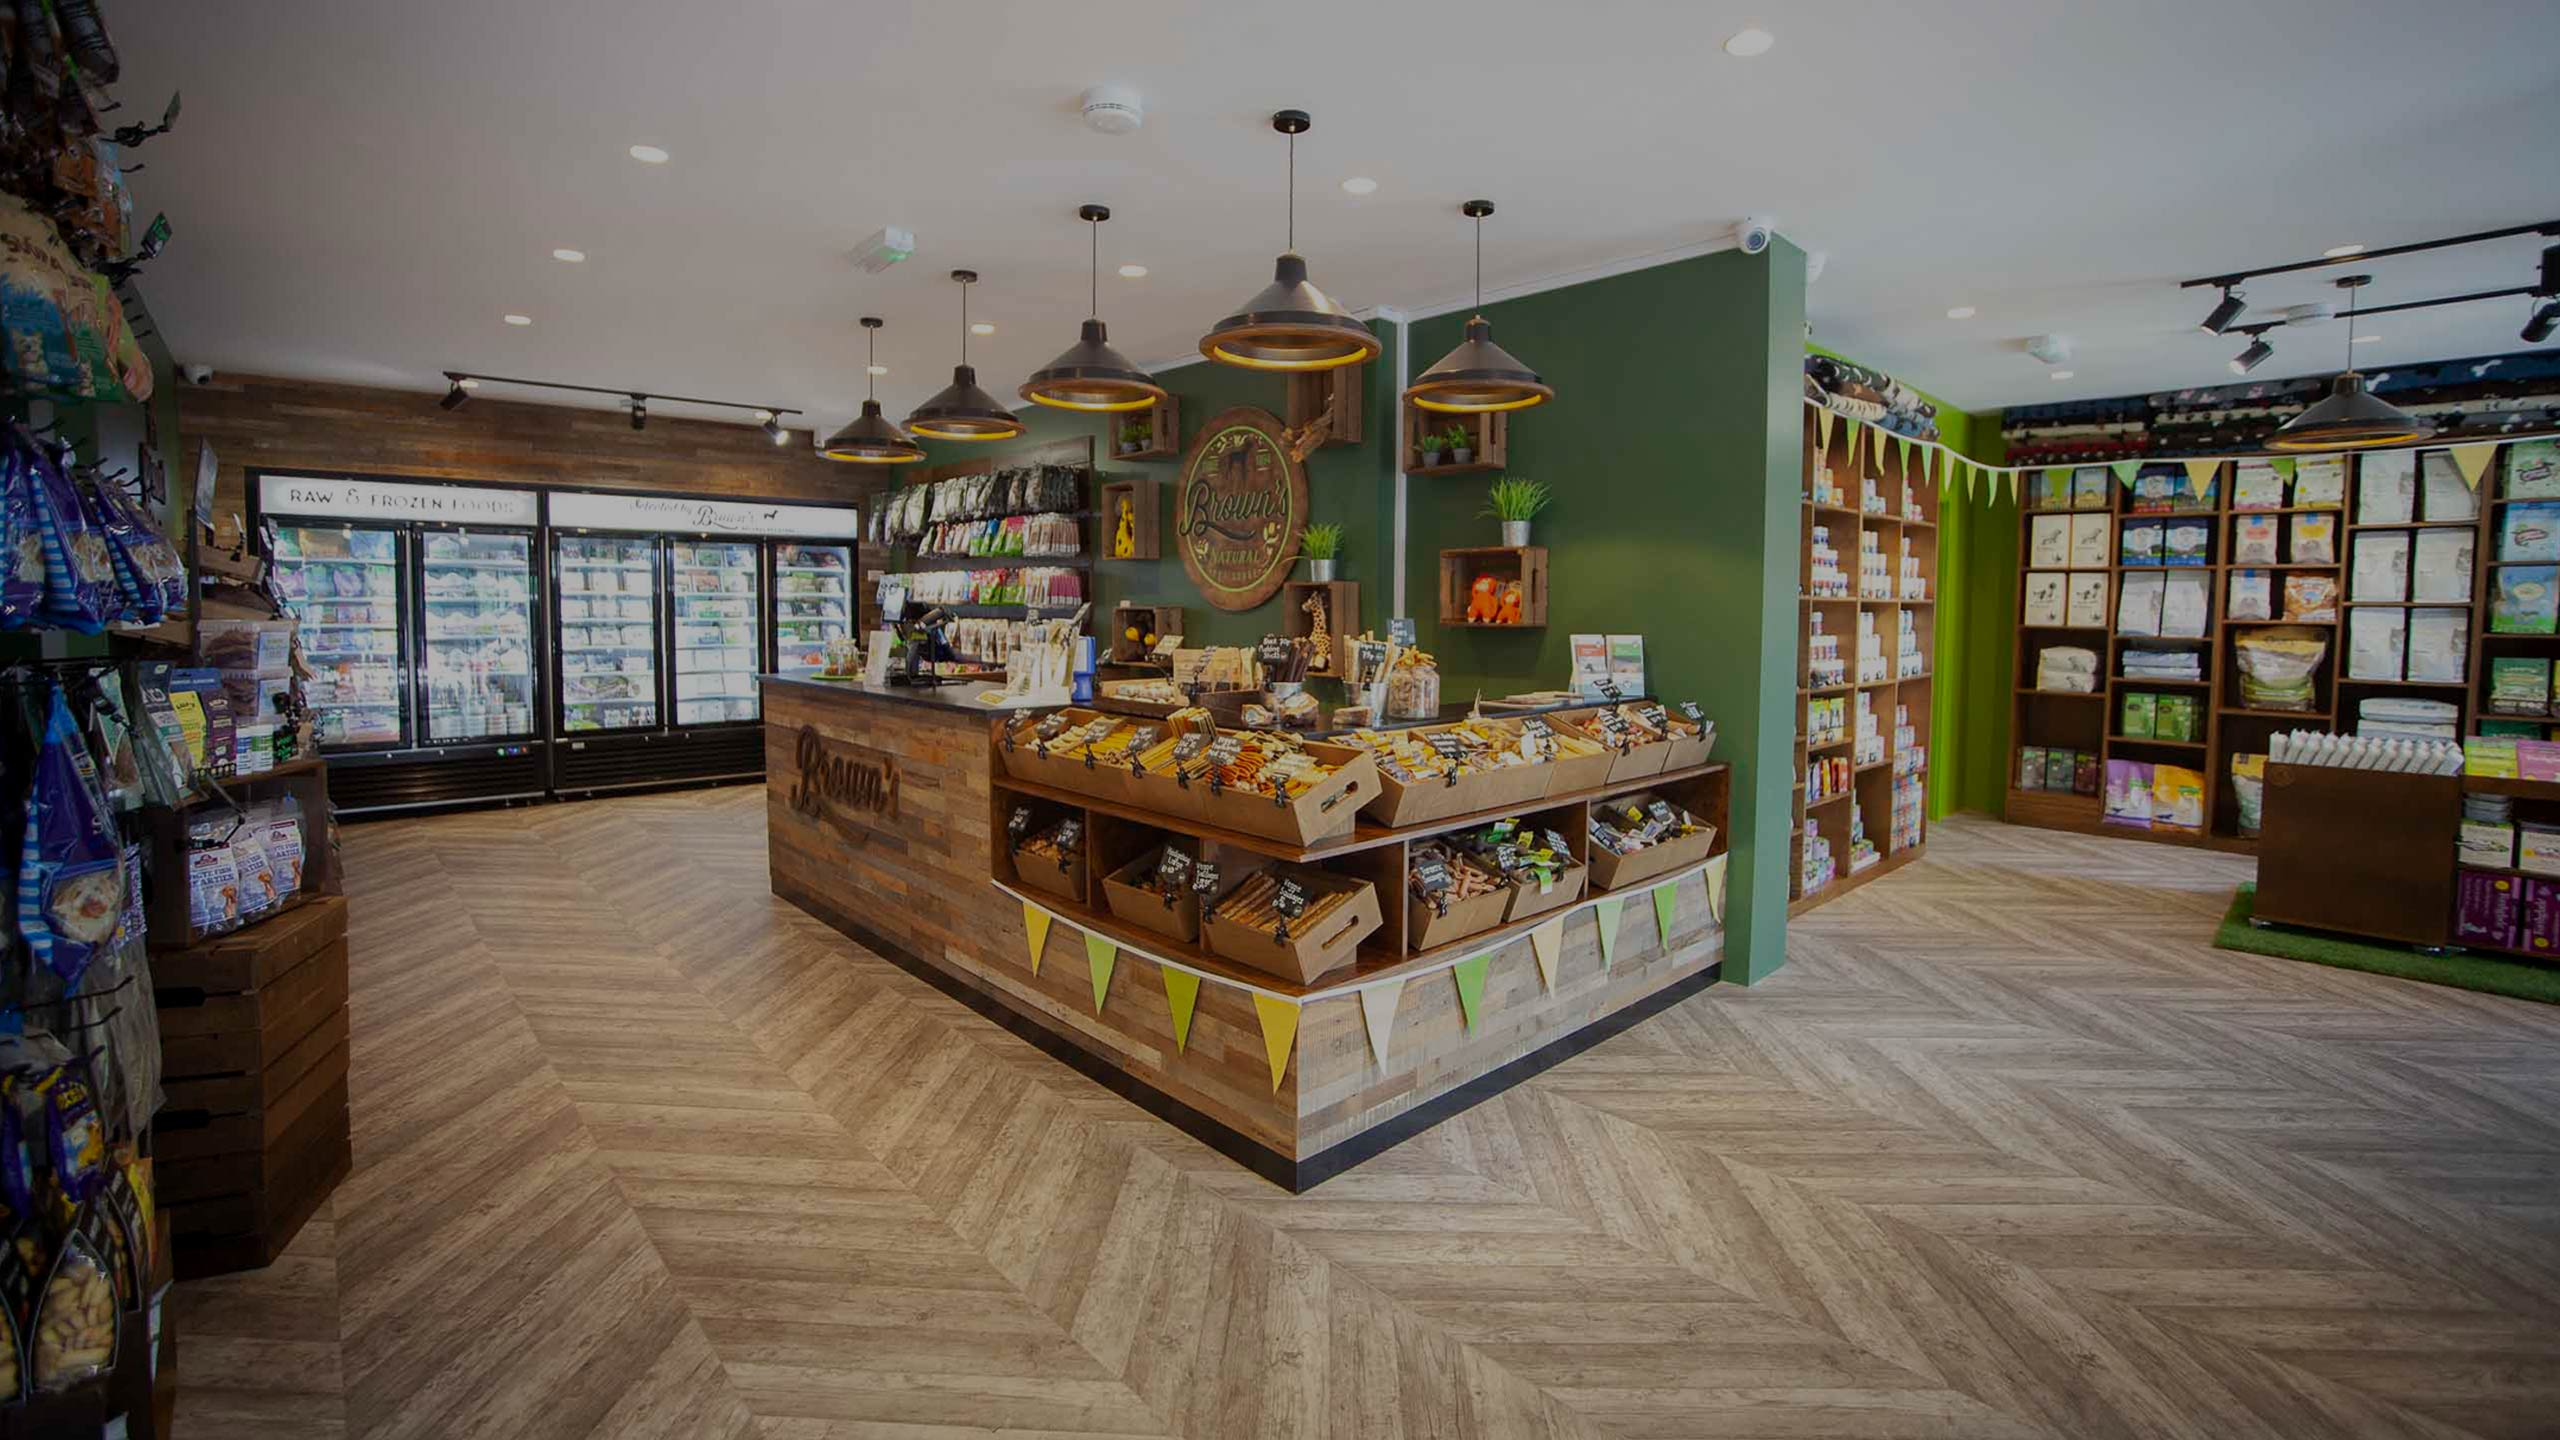 interior of a large pet store - interior fit out by RJ Steeles fit out contractors